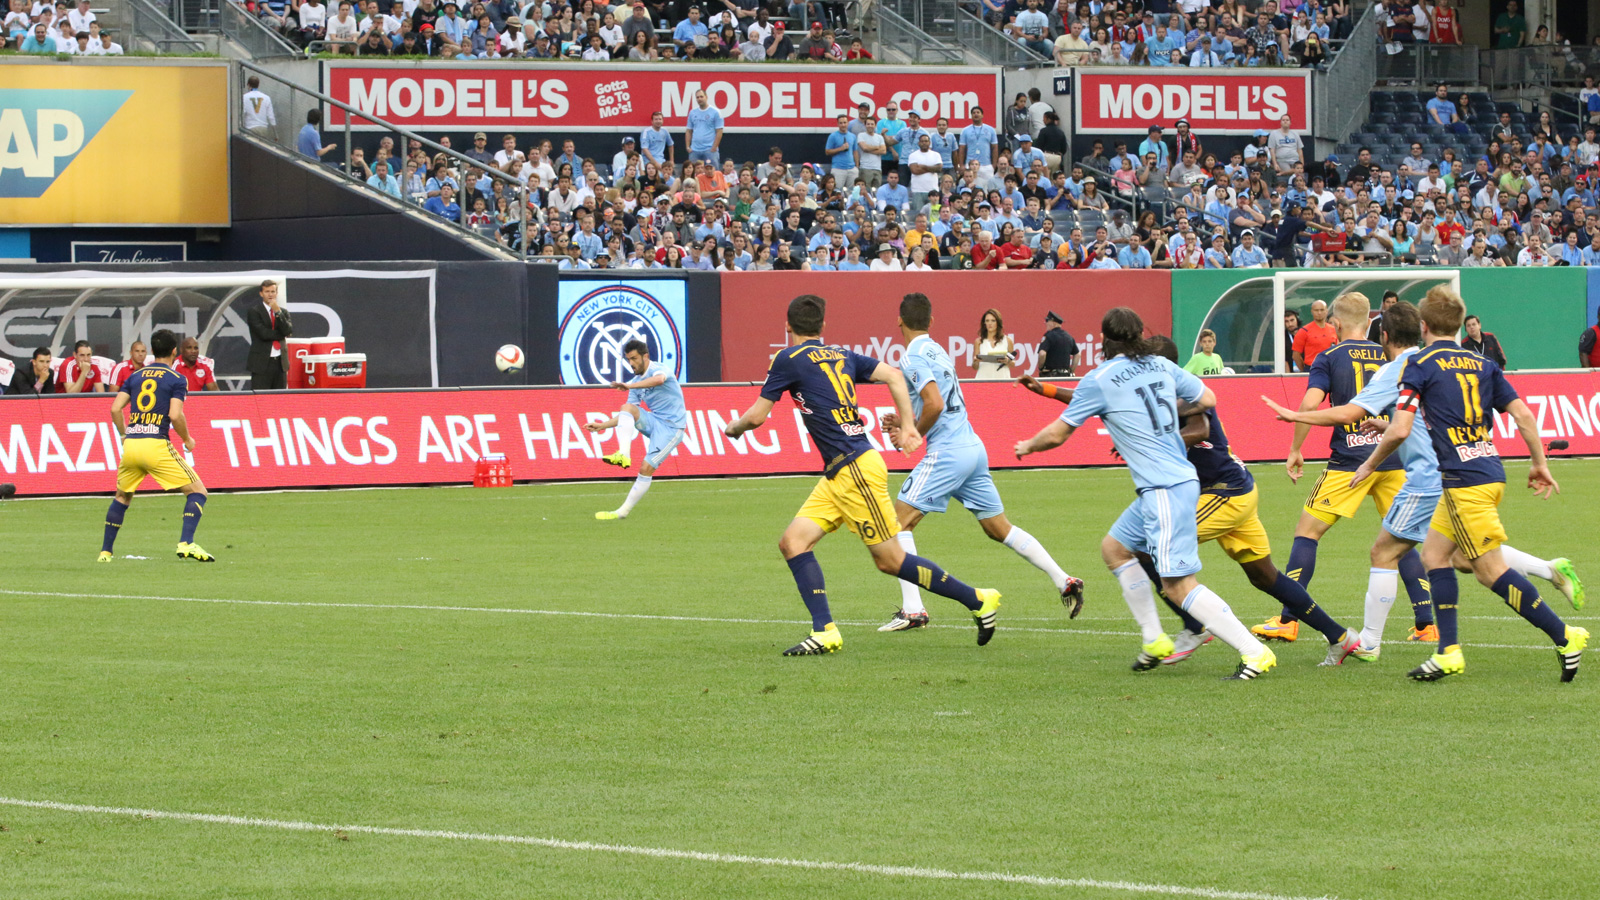 NYCFC striker and captain David Villa sends a free kick into traffic near the New York Red Bulls' goal in the first half of their clash at Yankee Stadium on June 28.